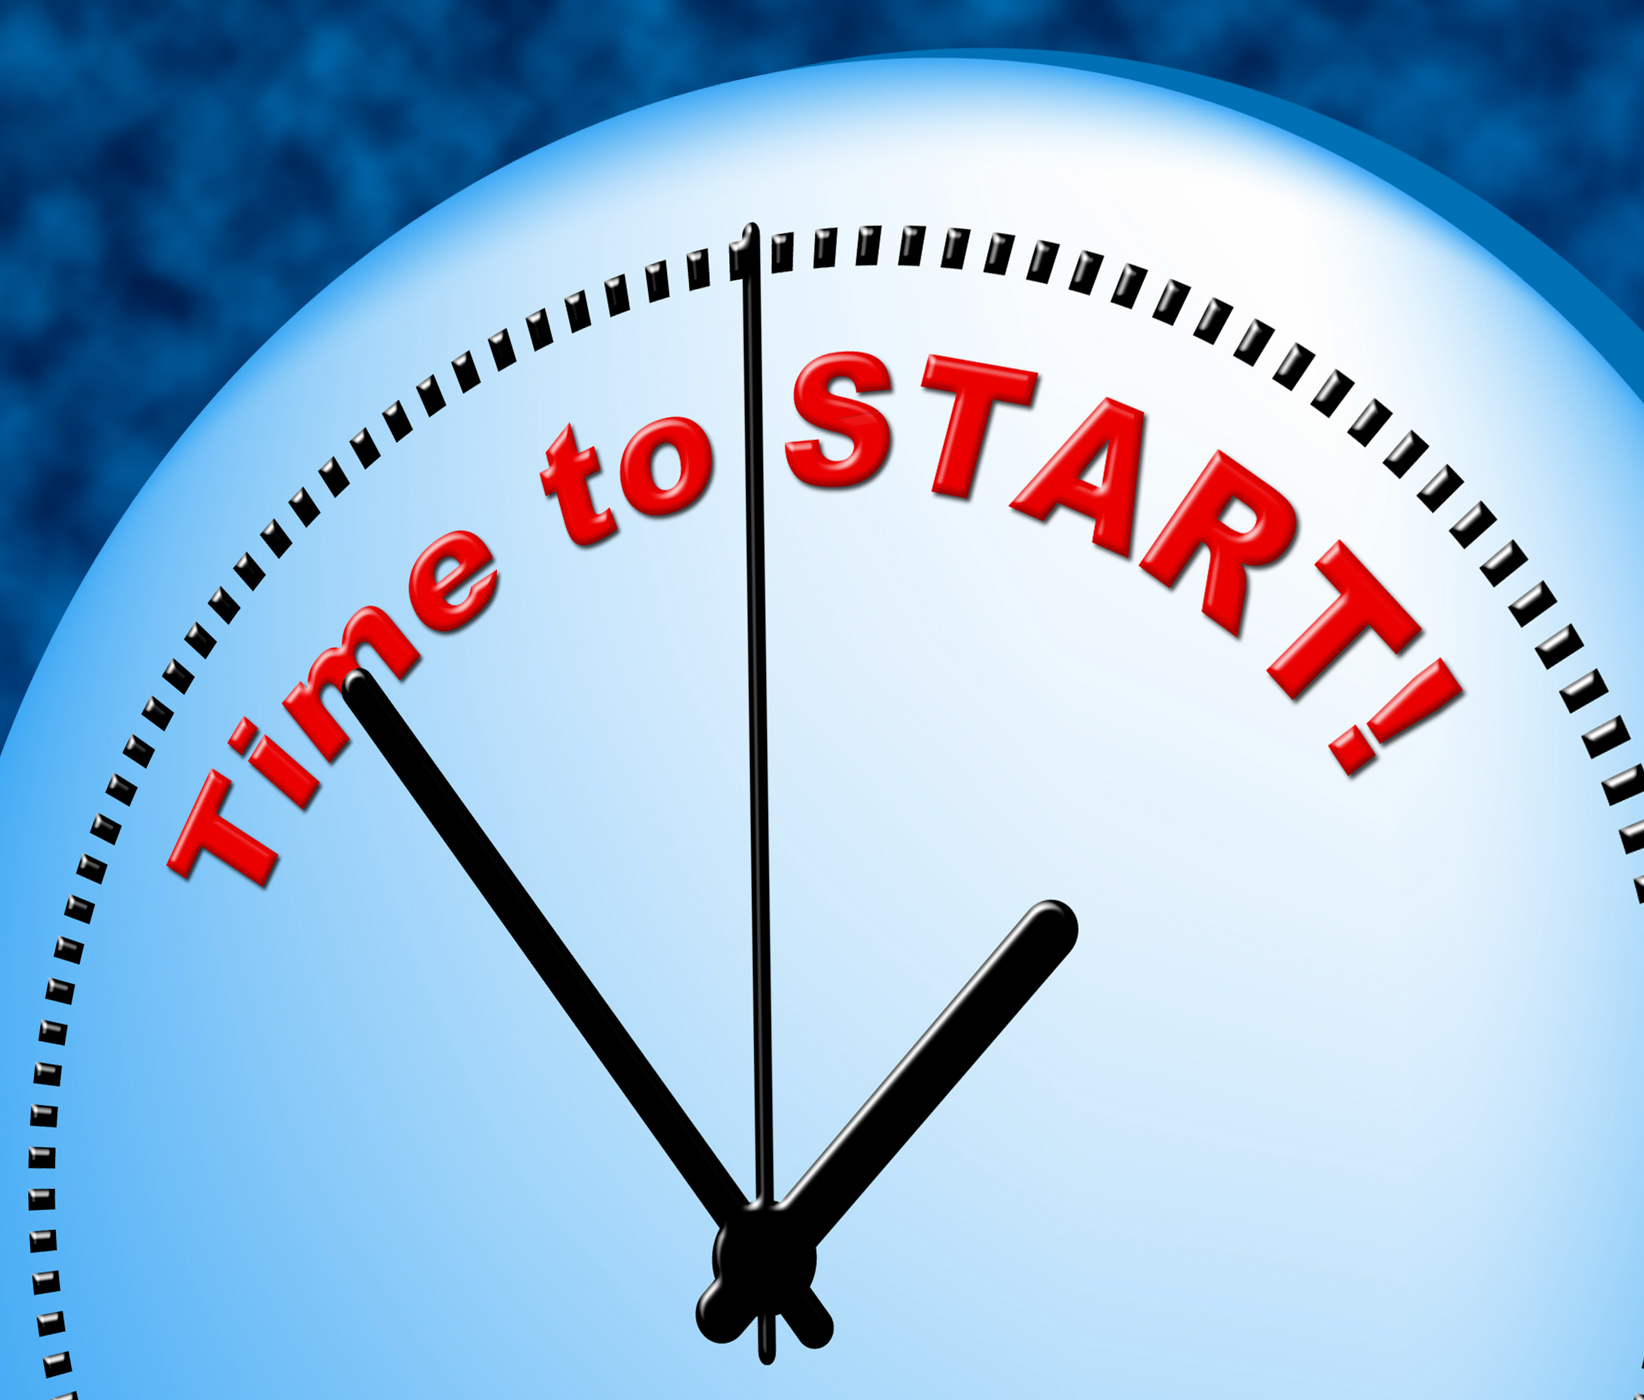 Time to start indicates act now and beginning photo